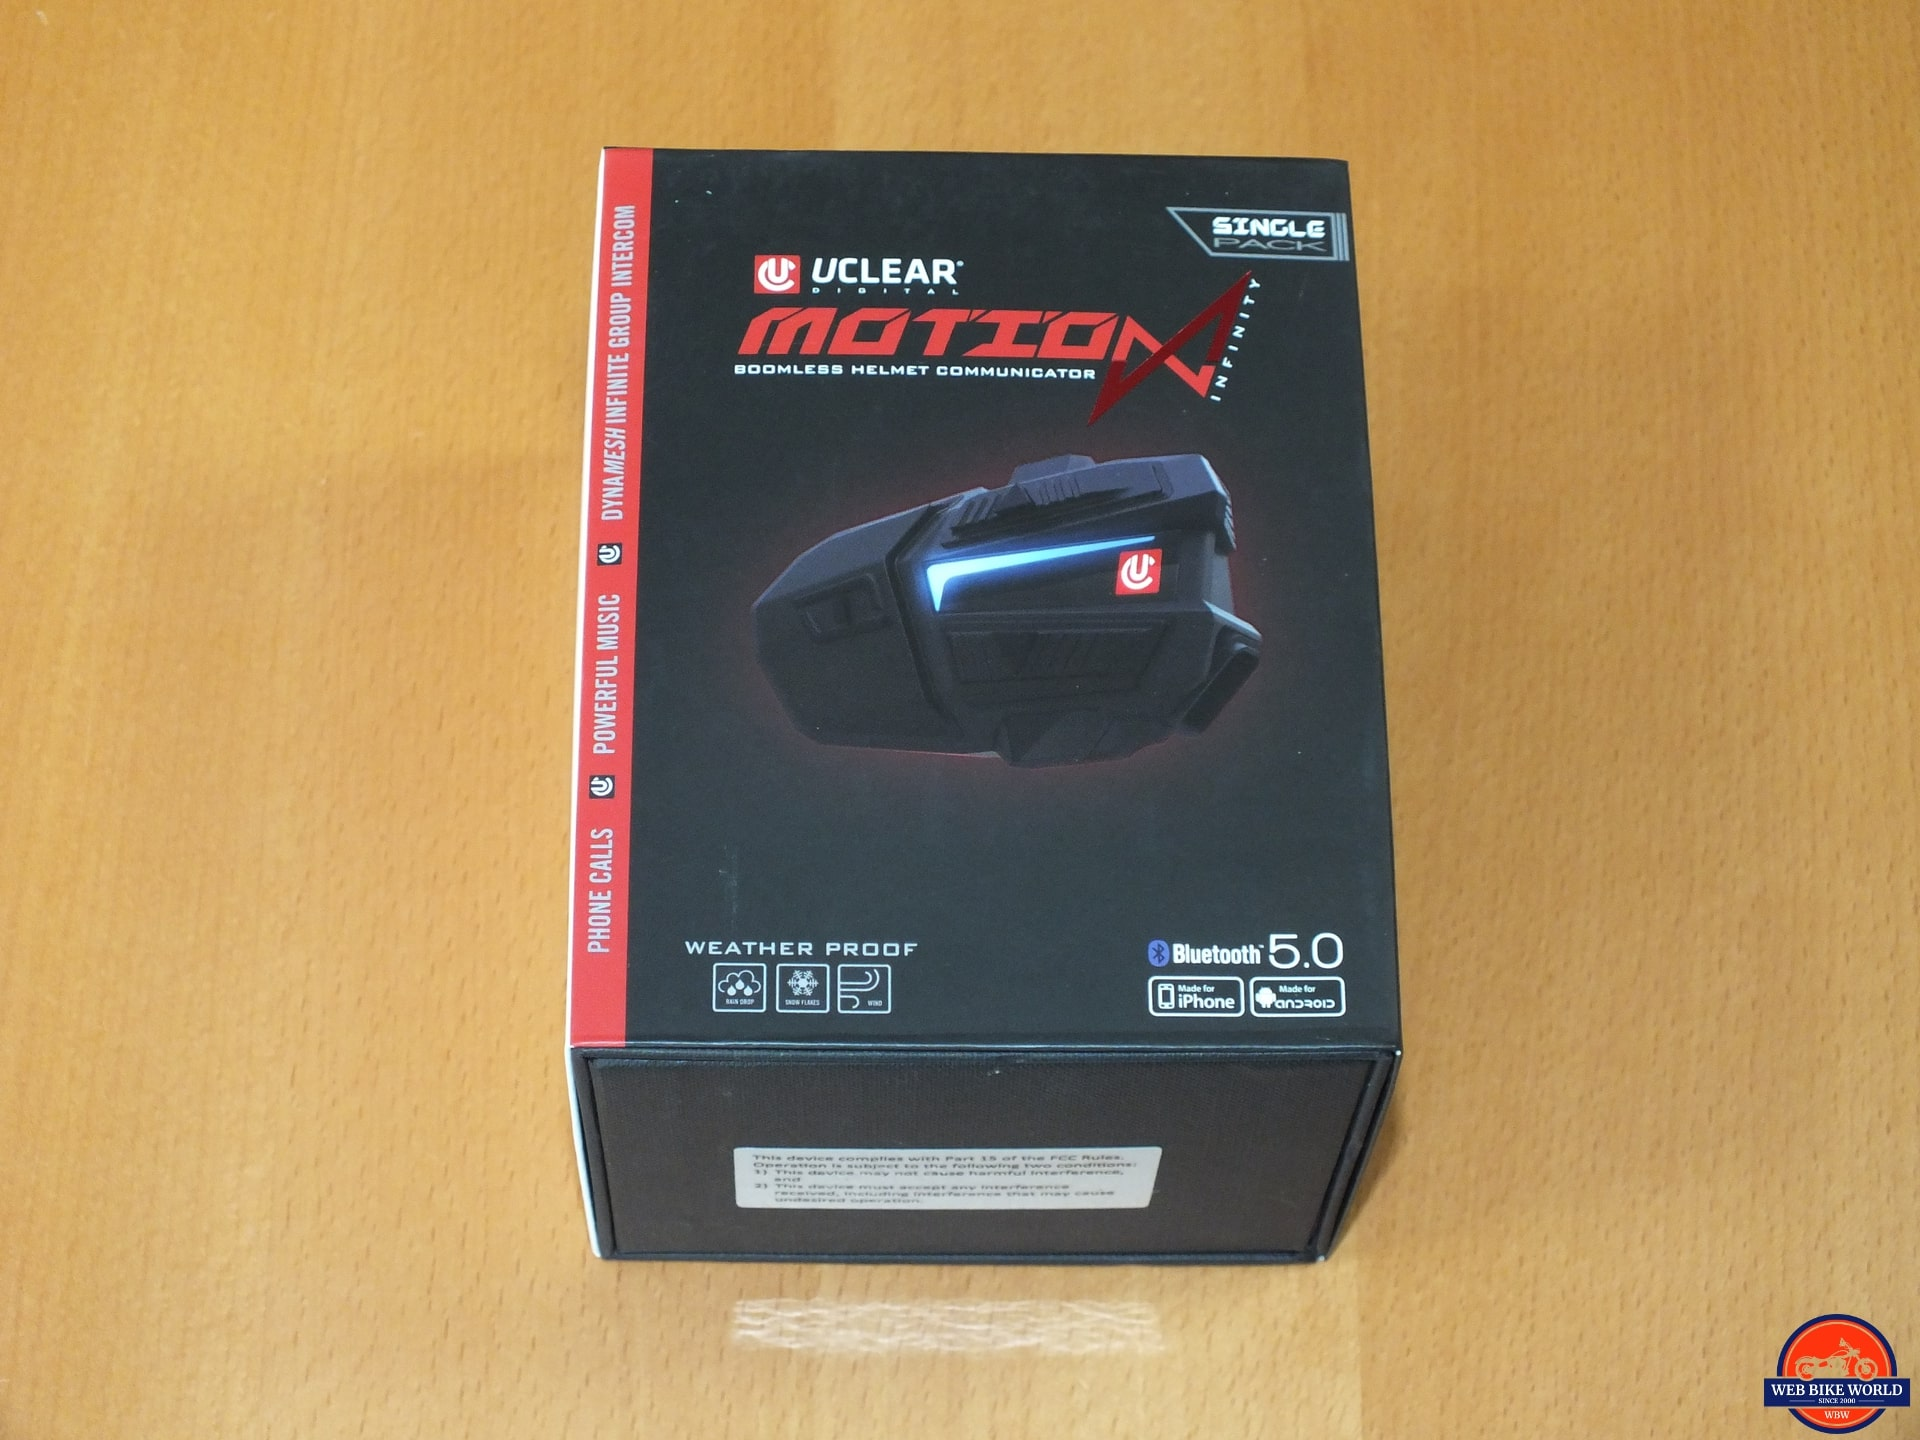 Motion Infinity, Layout, Retail box